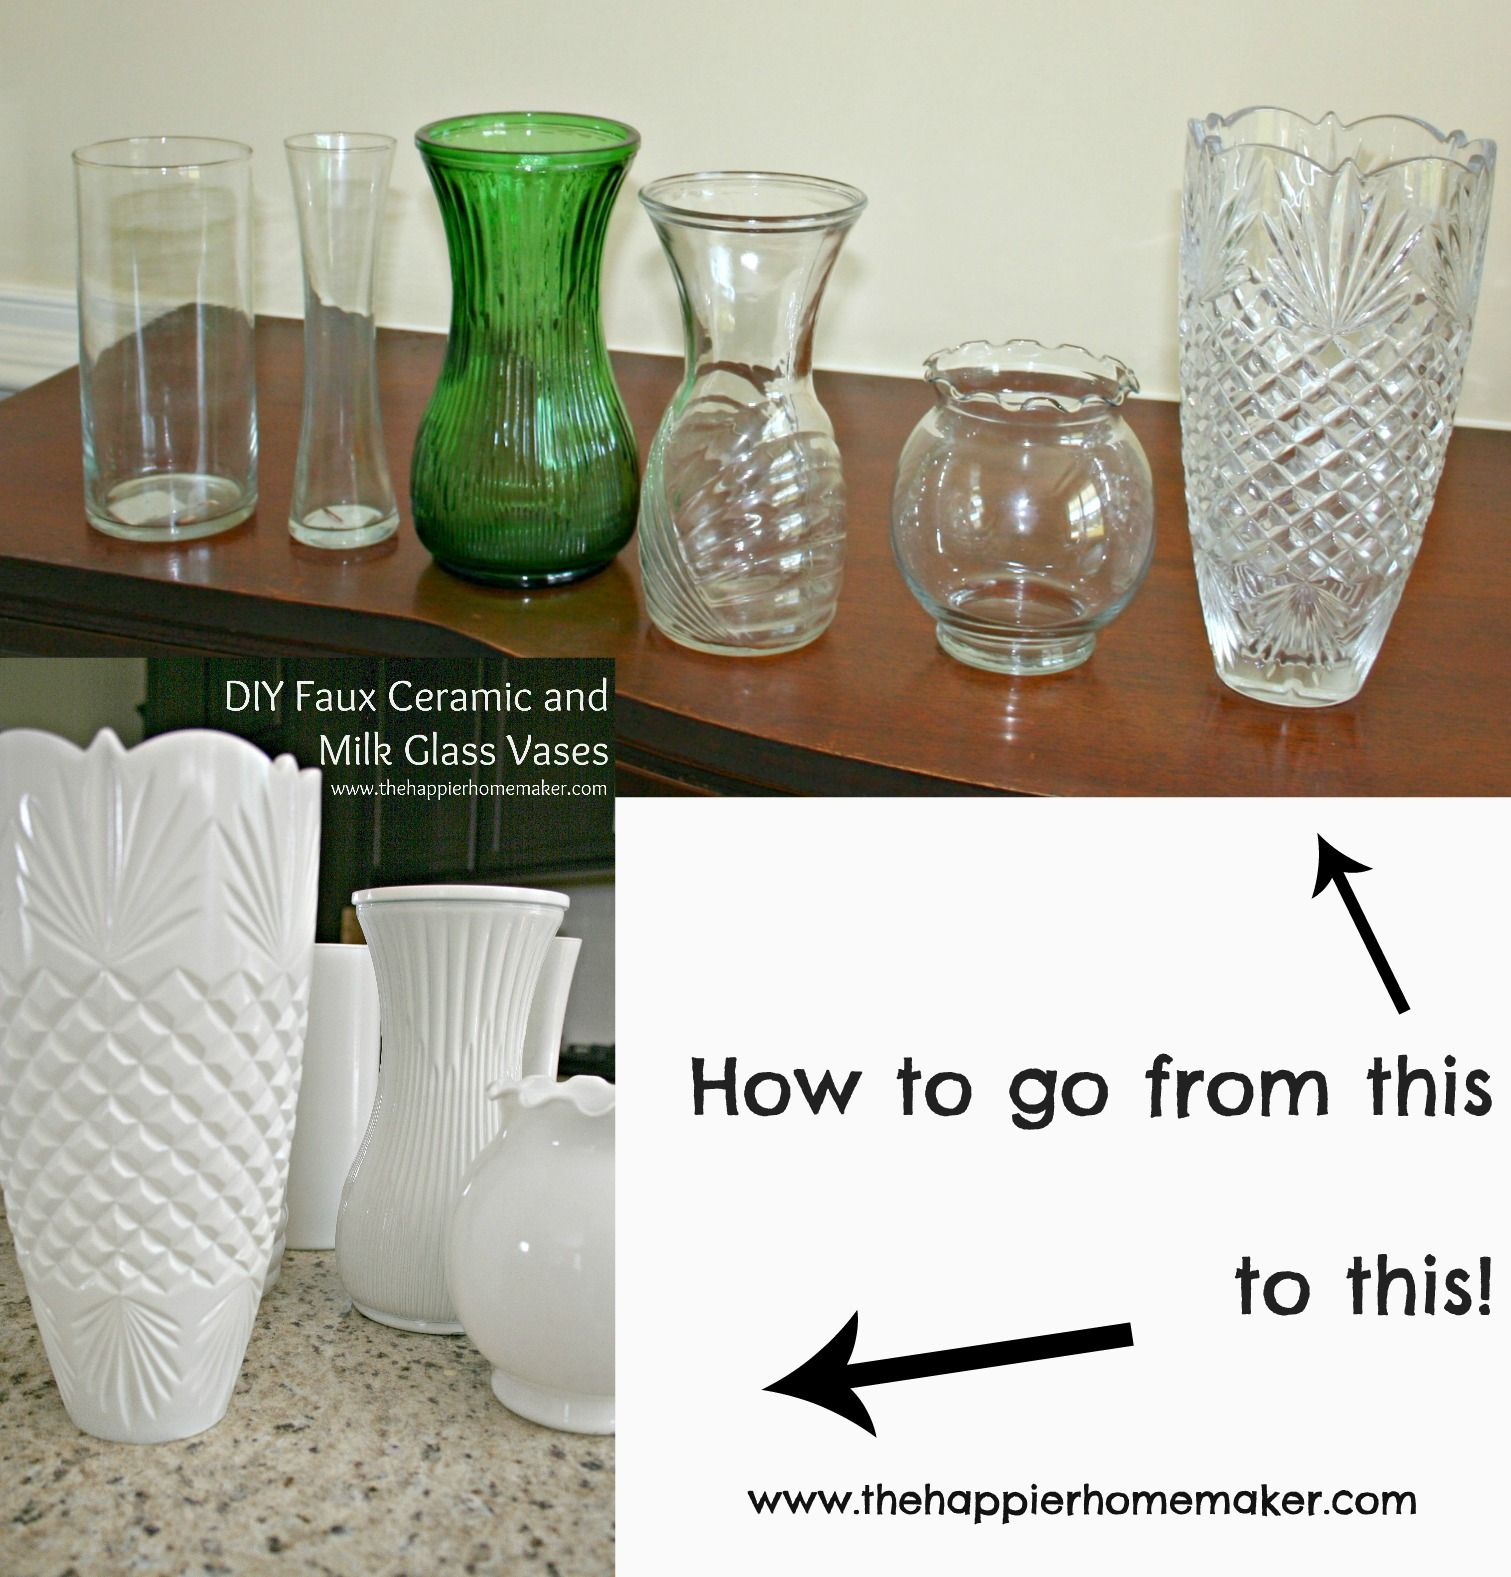 Diy white faux ceramic and milk glass vases the happier diy white faux ceramic and milk glass vases spray painted rustoleum universal gloss white reviewsmspy